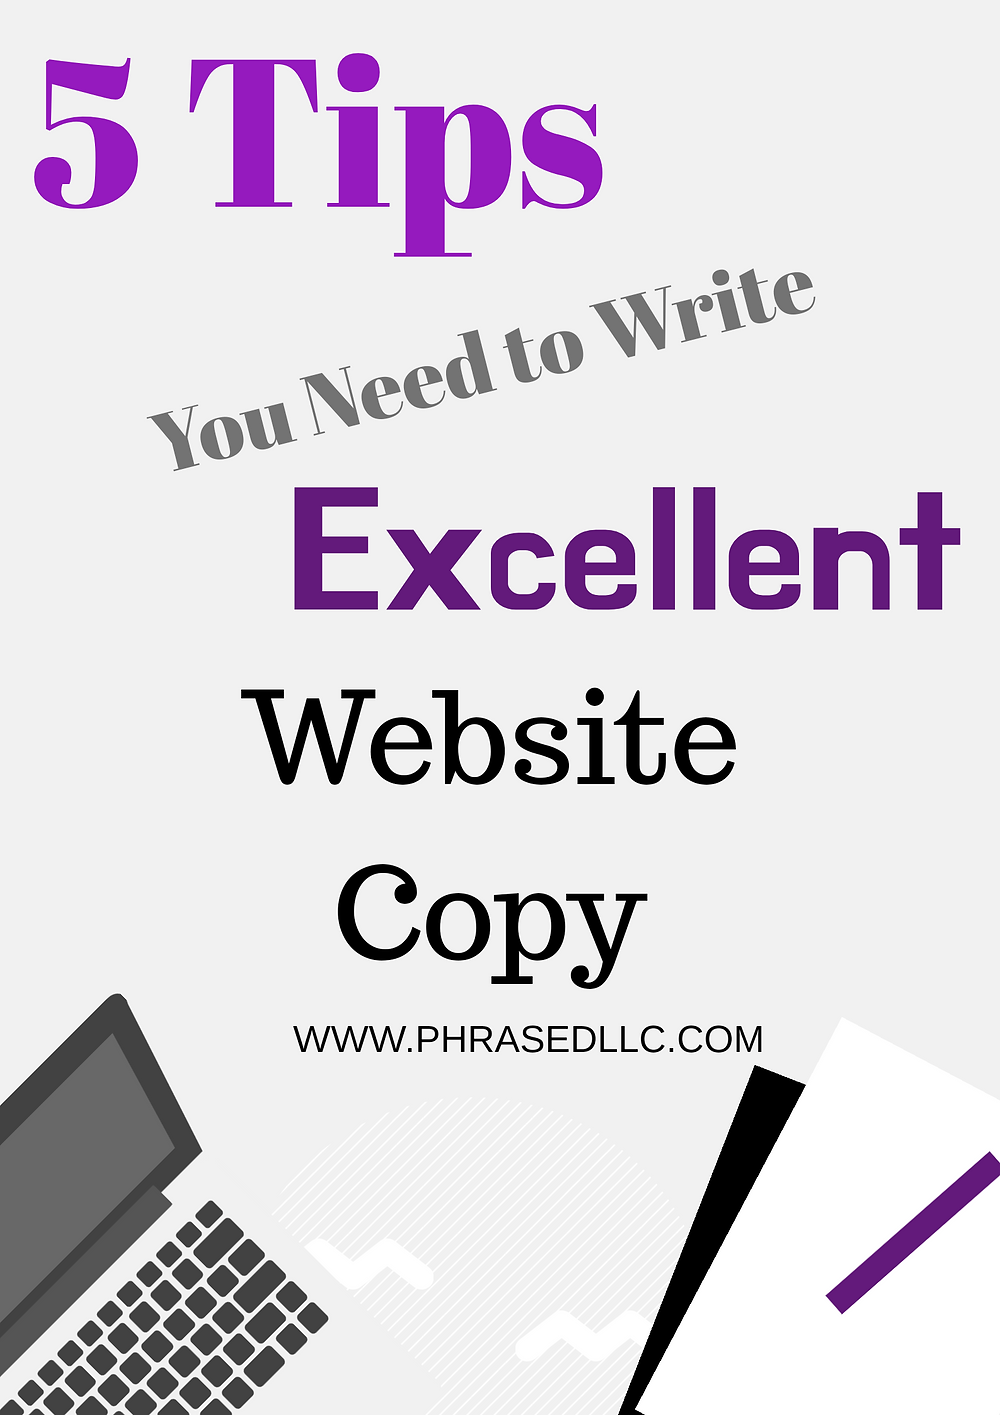 Website copy tips to help improve your website copy writing